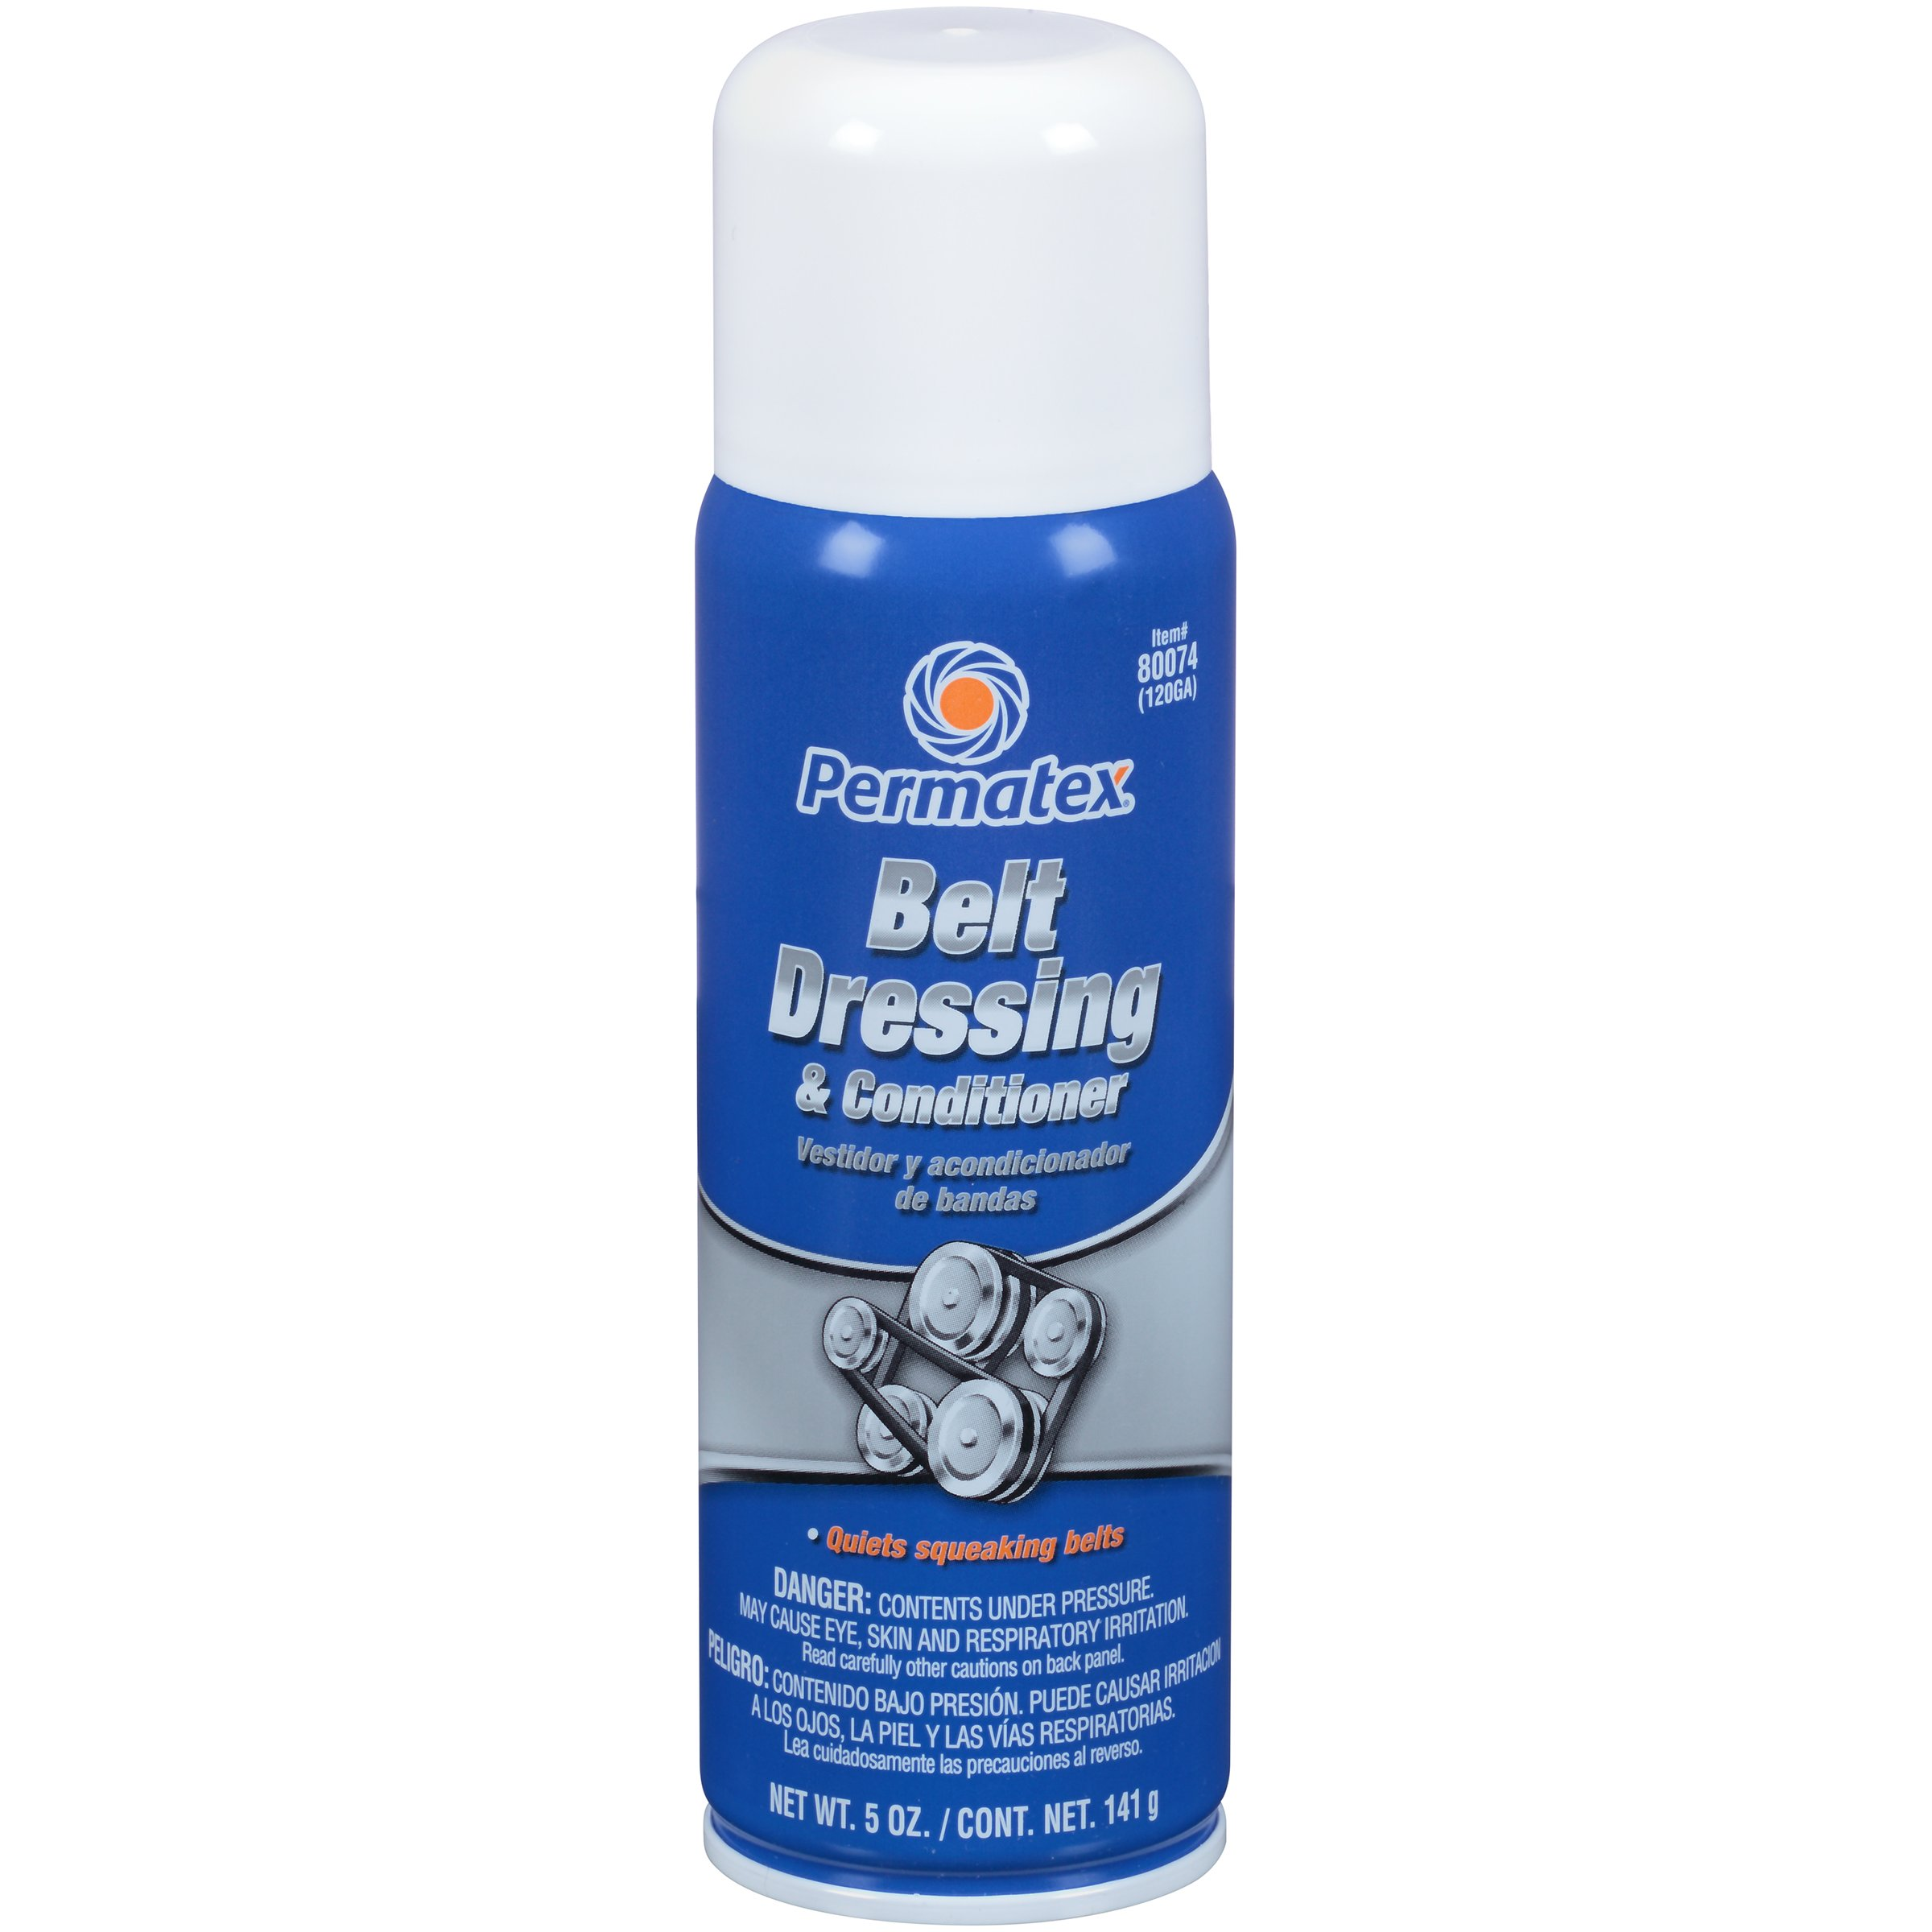 Permatex 80074-12PK Belt Dressing and Conditioner, 5 oz. net Aerosol Can (Pack of 12) by Permatex